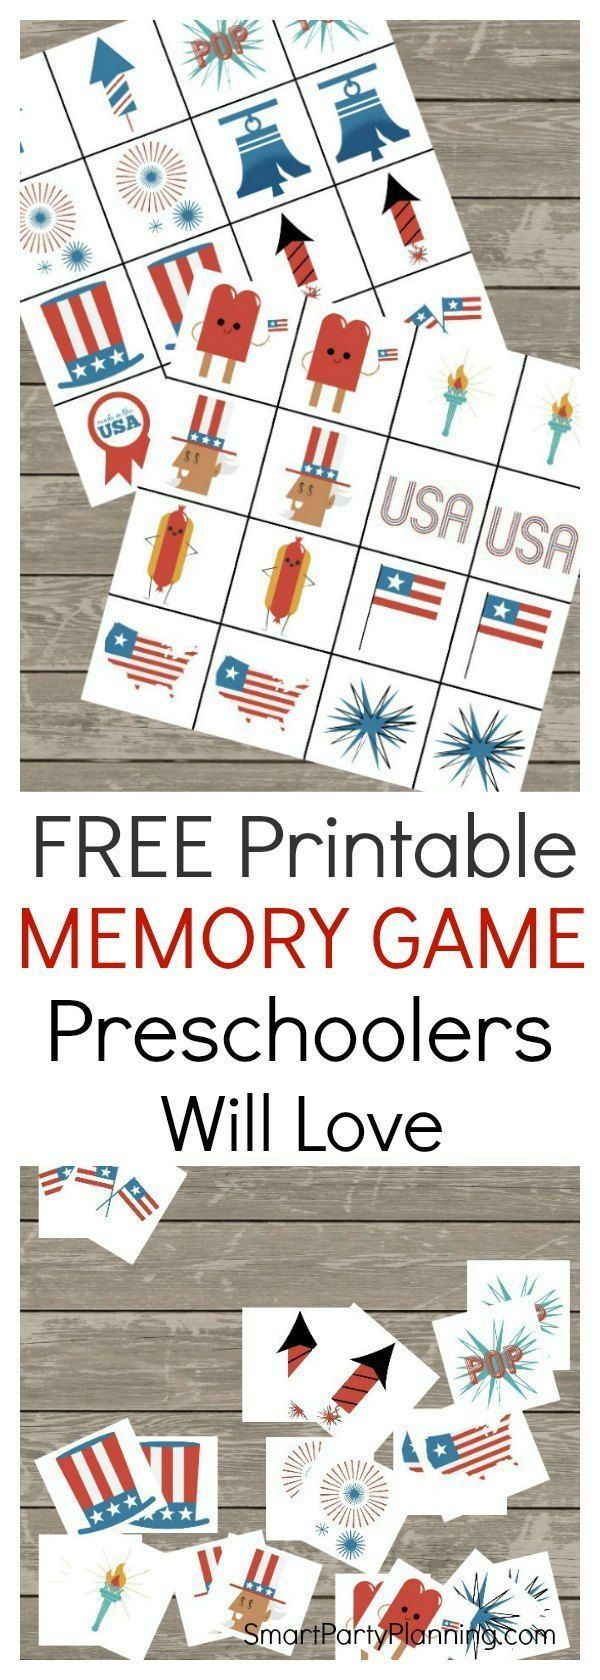 Printable Memory Game That Preschoolers Will Love Labor Day Crafts Memory Games Printables Free Kids [ 1680 x 600 Pixel ]